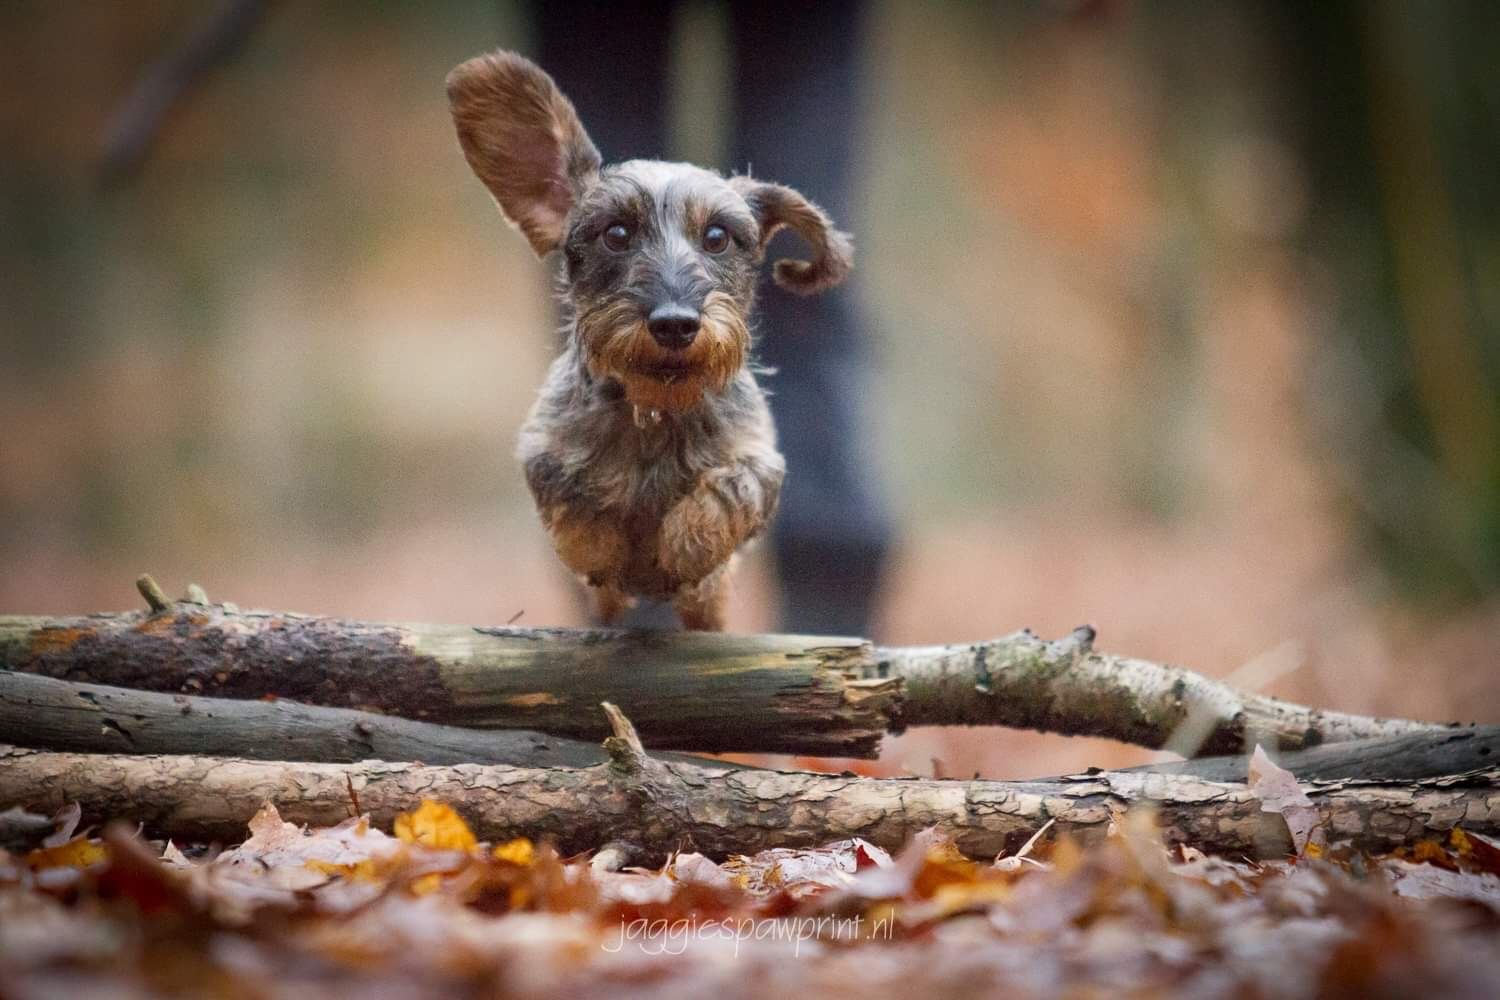 Cute Dachshunds Image By Dachshund Central In 2020 Animals